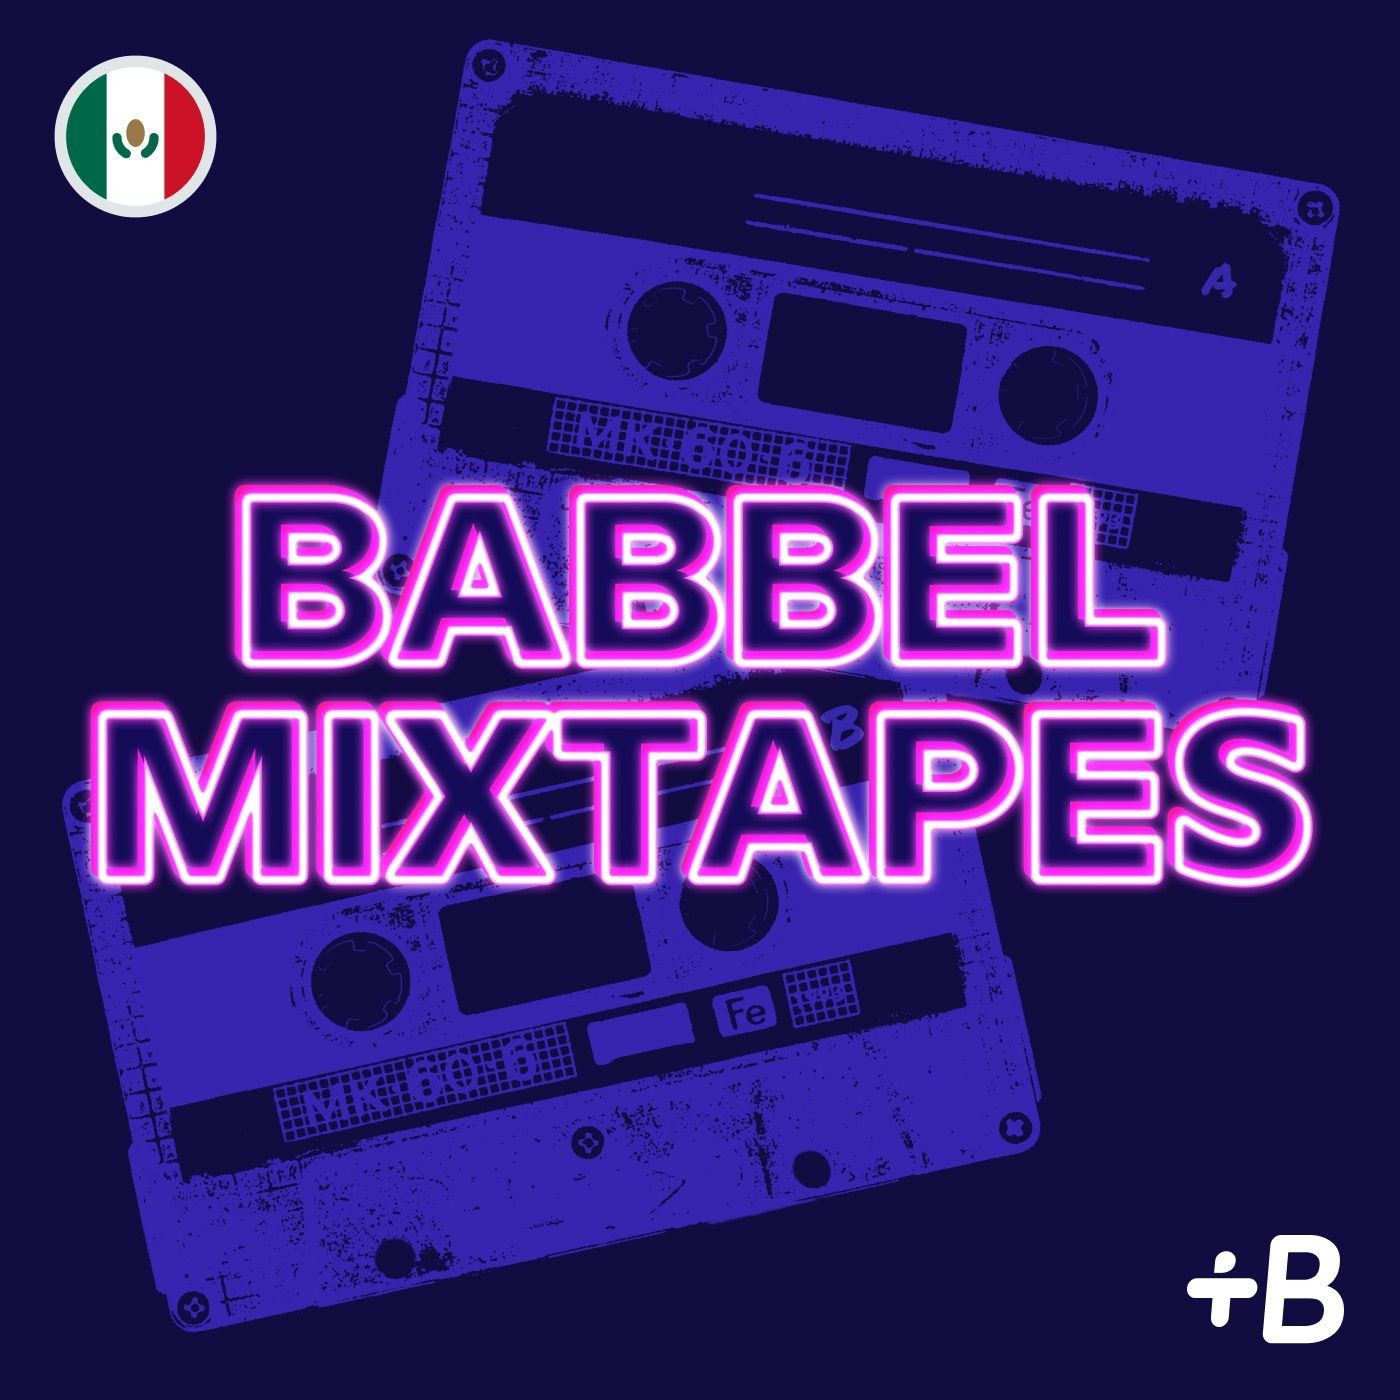 Discover: Babbel Mixtapes!